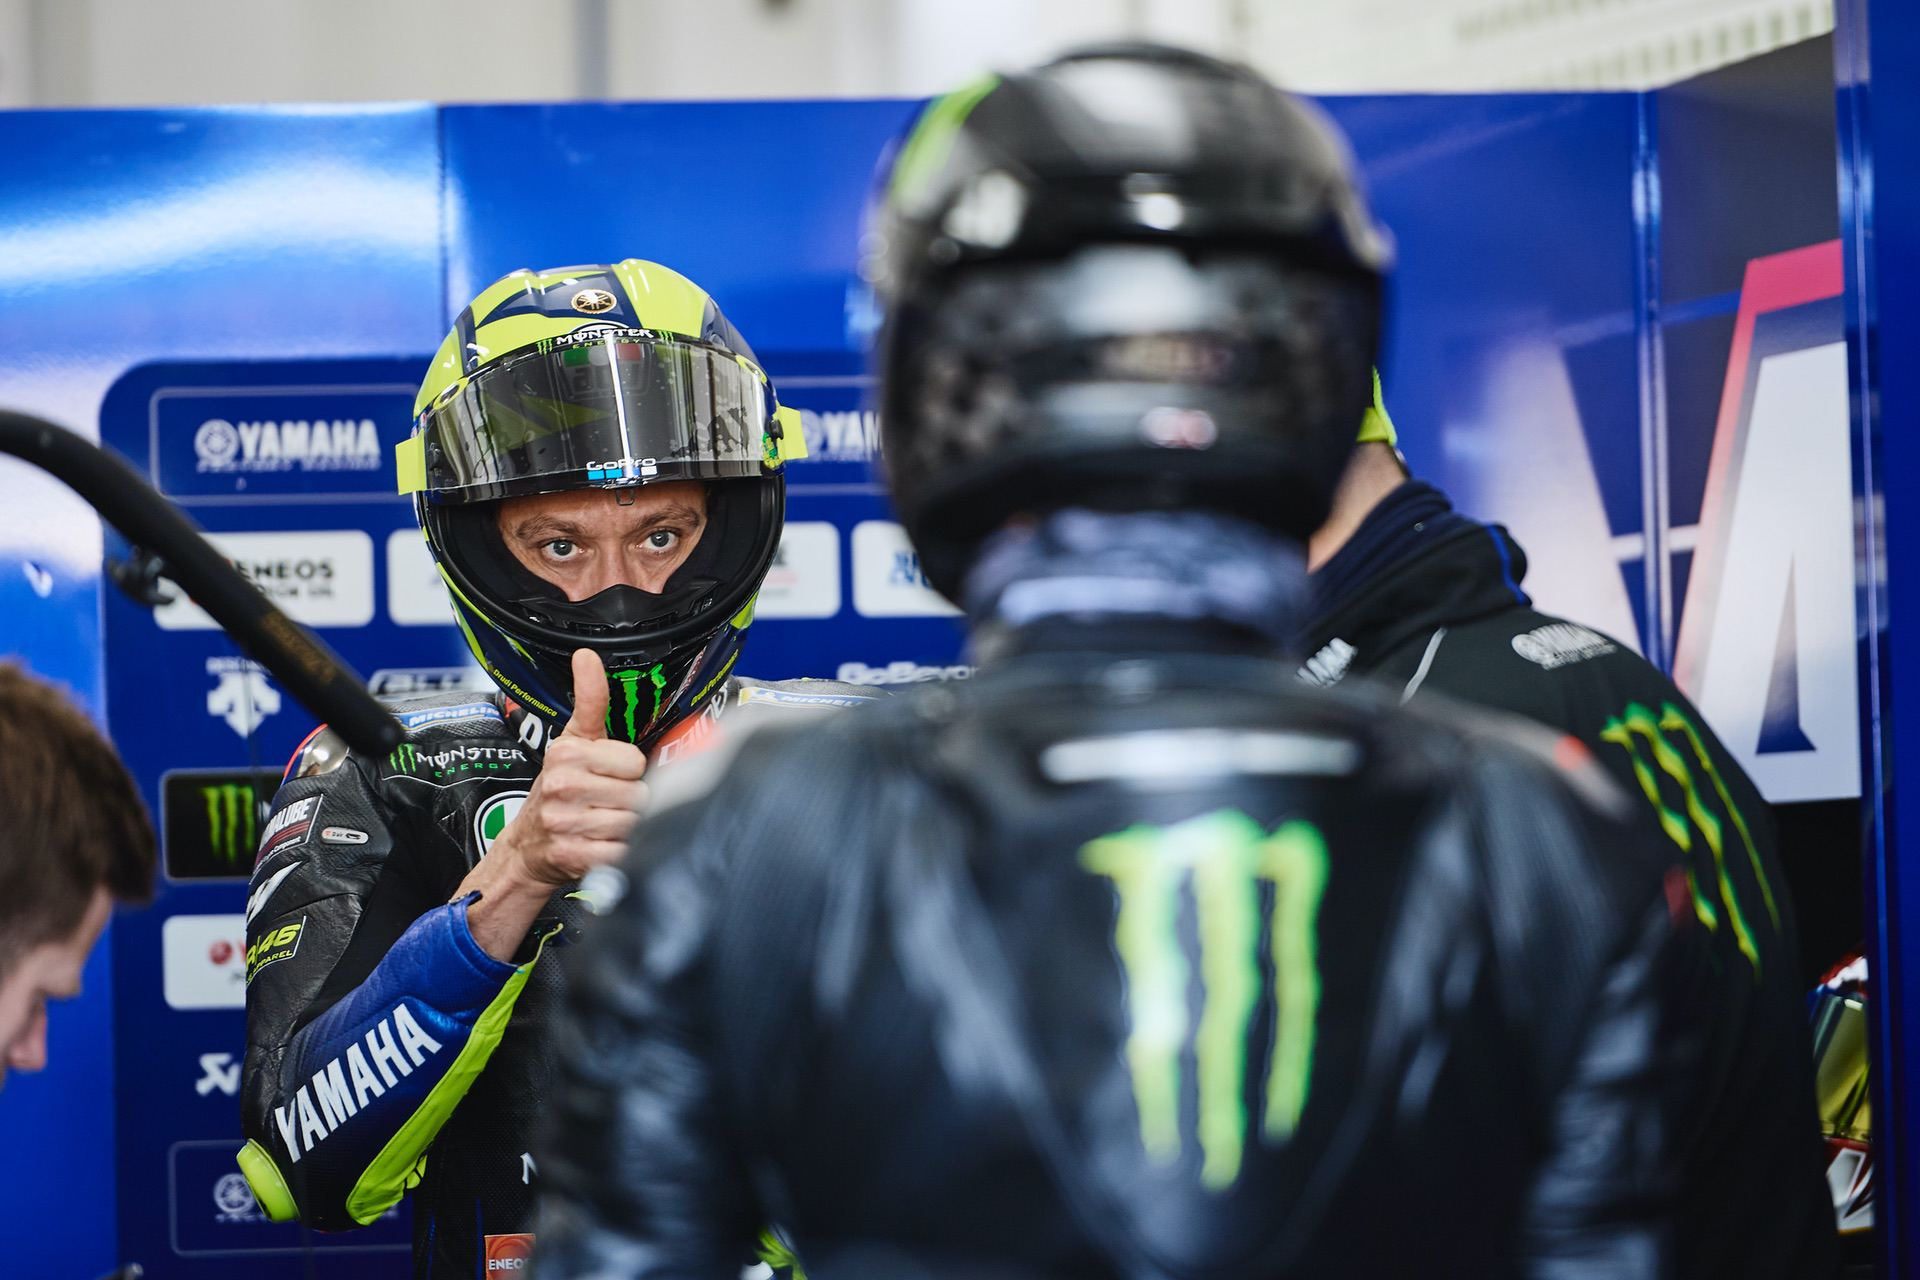 VALENCIA, SPAIN - DECEMBER 09: Atmosphere during the #LH44VR46 test at Ricardo Tormo circuit of Valencia on December 09, 2019 in Valencia, Spain. Lewis Hamilton and Valentino Rossi swapped their respective machinery in an unprecedented test between two motorsport icons. Photo by Guido De Bortoli/Getty Images for Monster Energy)